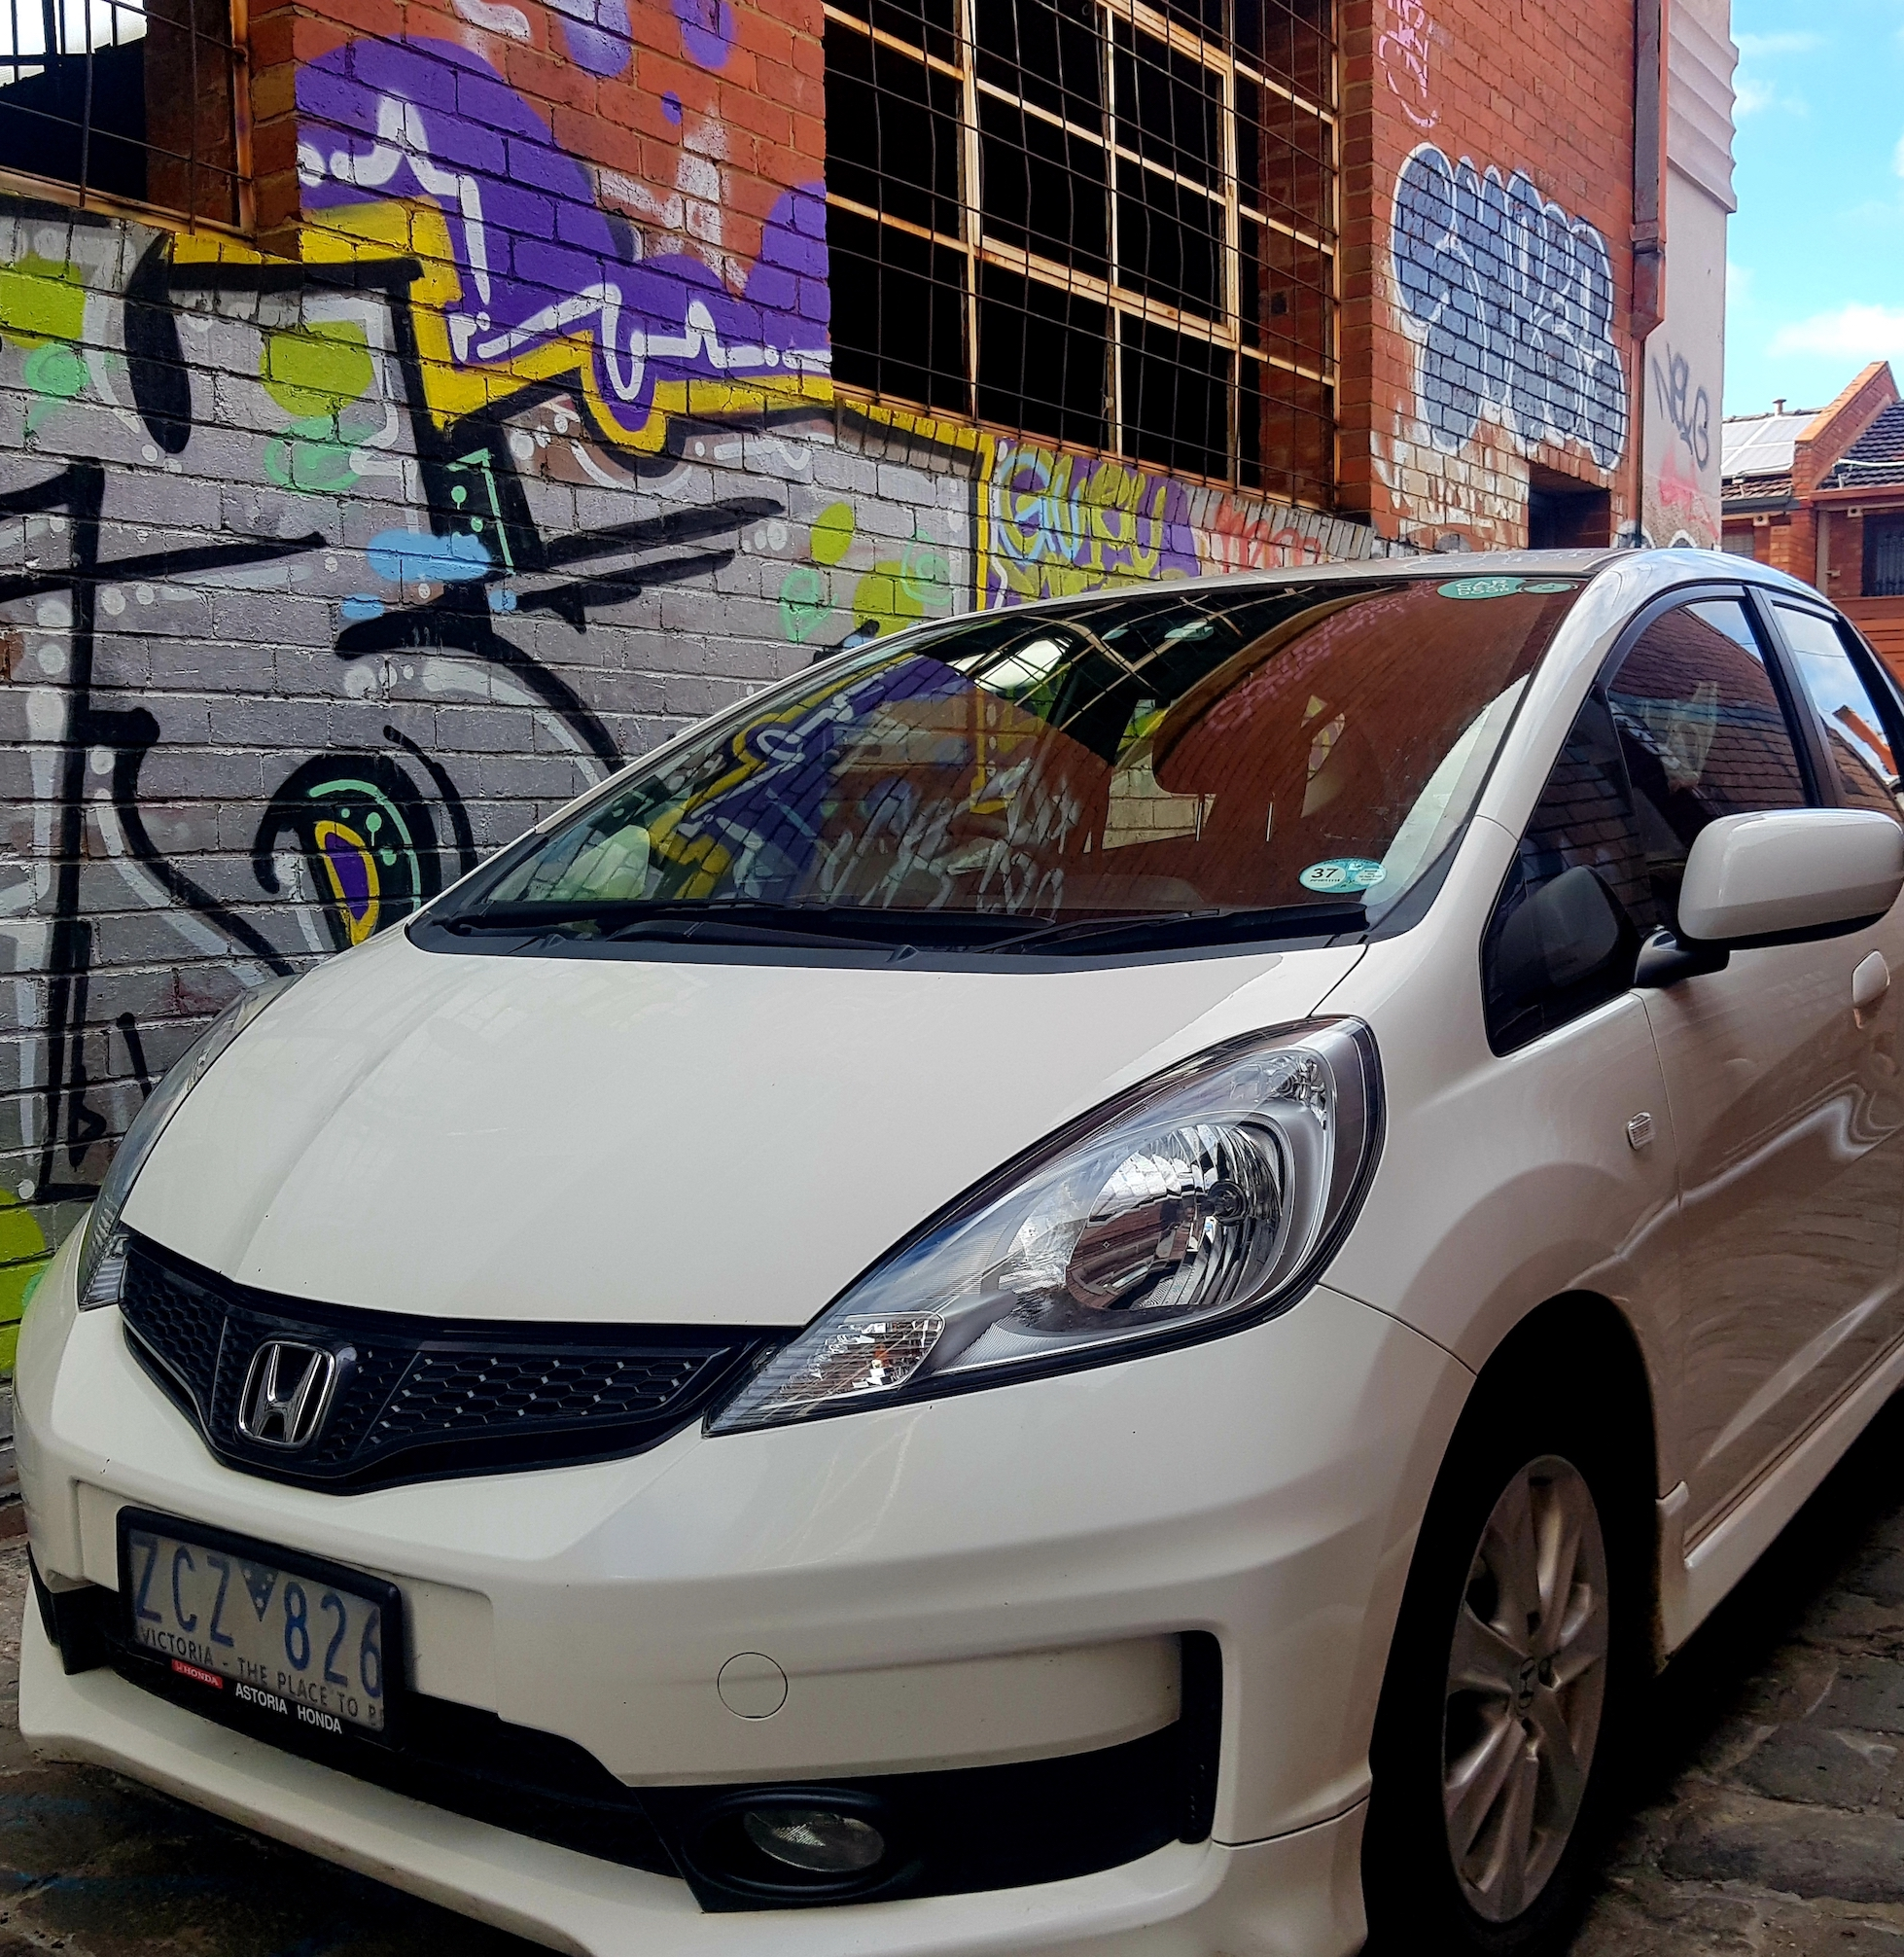 Picture of Brylee's 2012 Honda Jazz